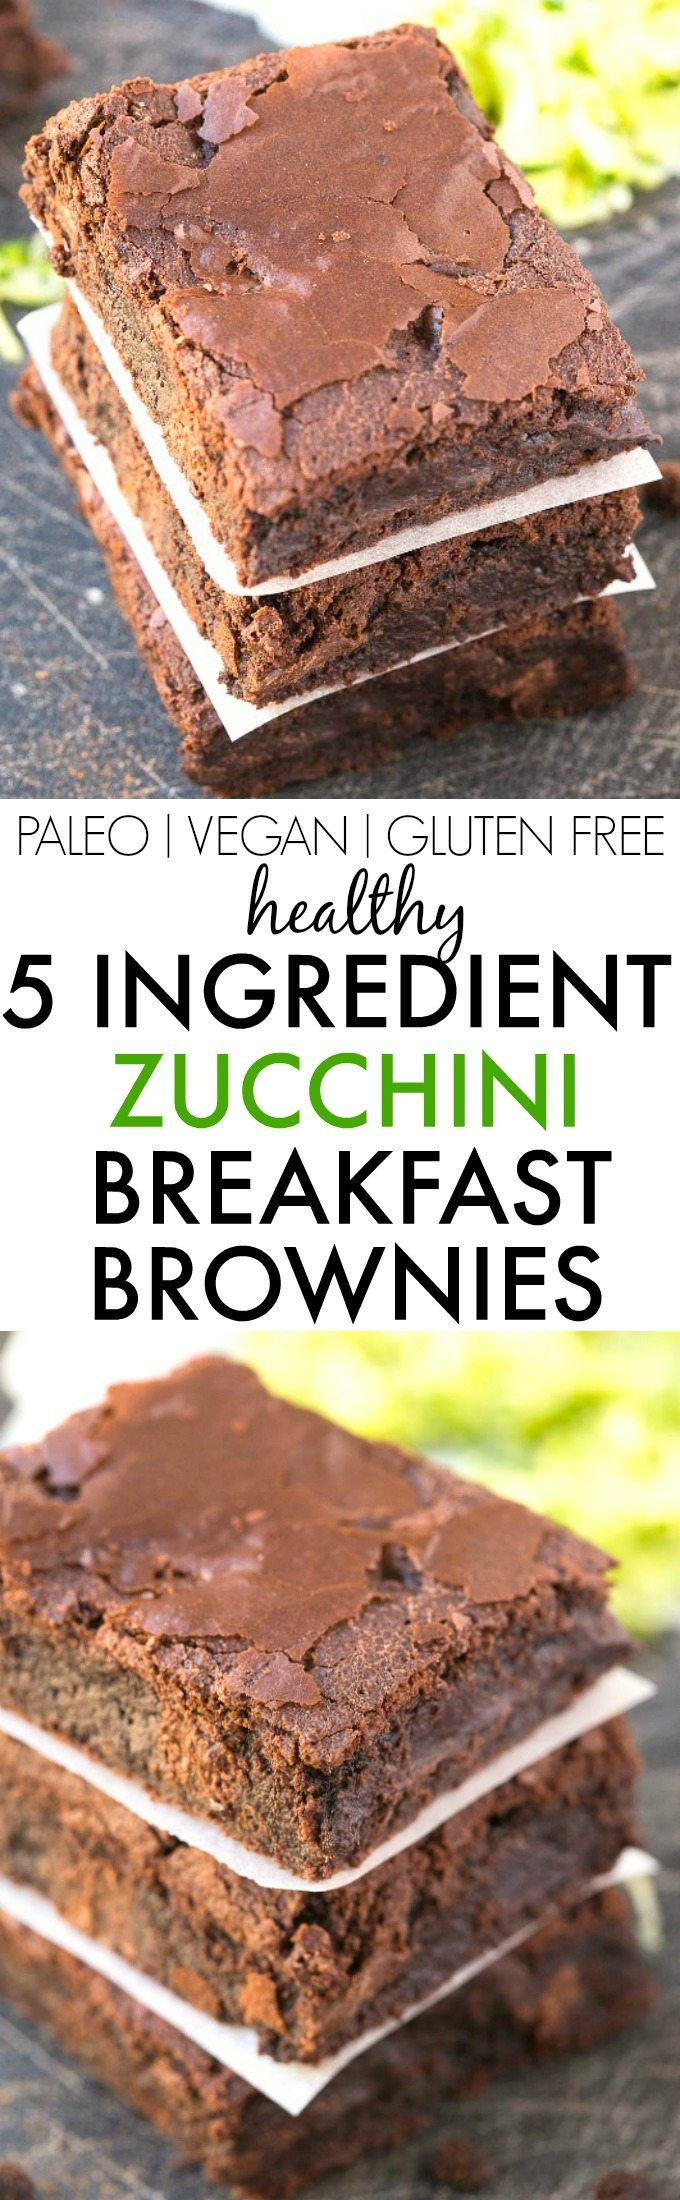 Healthy 5 Ingredient Flourless Zucchini BREAKFAST BROWNIES- Moist, gooey and secretly healthy, these super fudgy brownies have NO flour, NO grains, NO sugar and NO butter! vegan, gluten free, paleo recipe- thebigmansworld.com